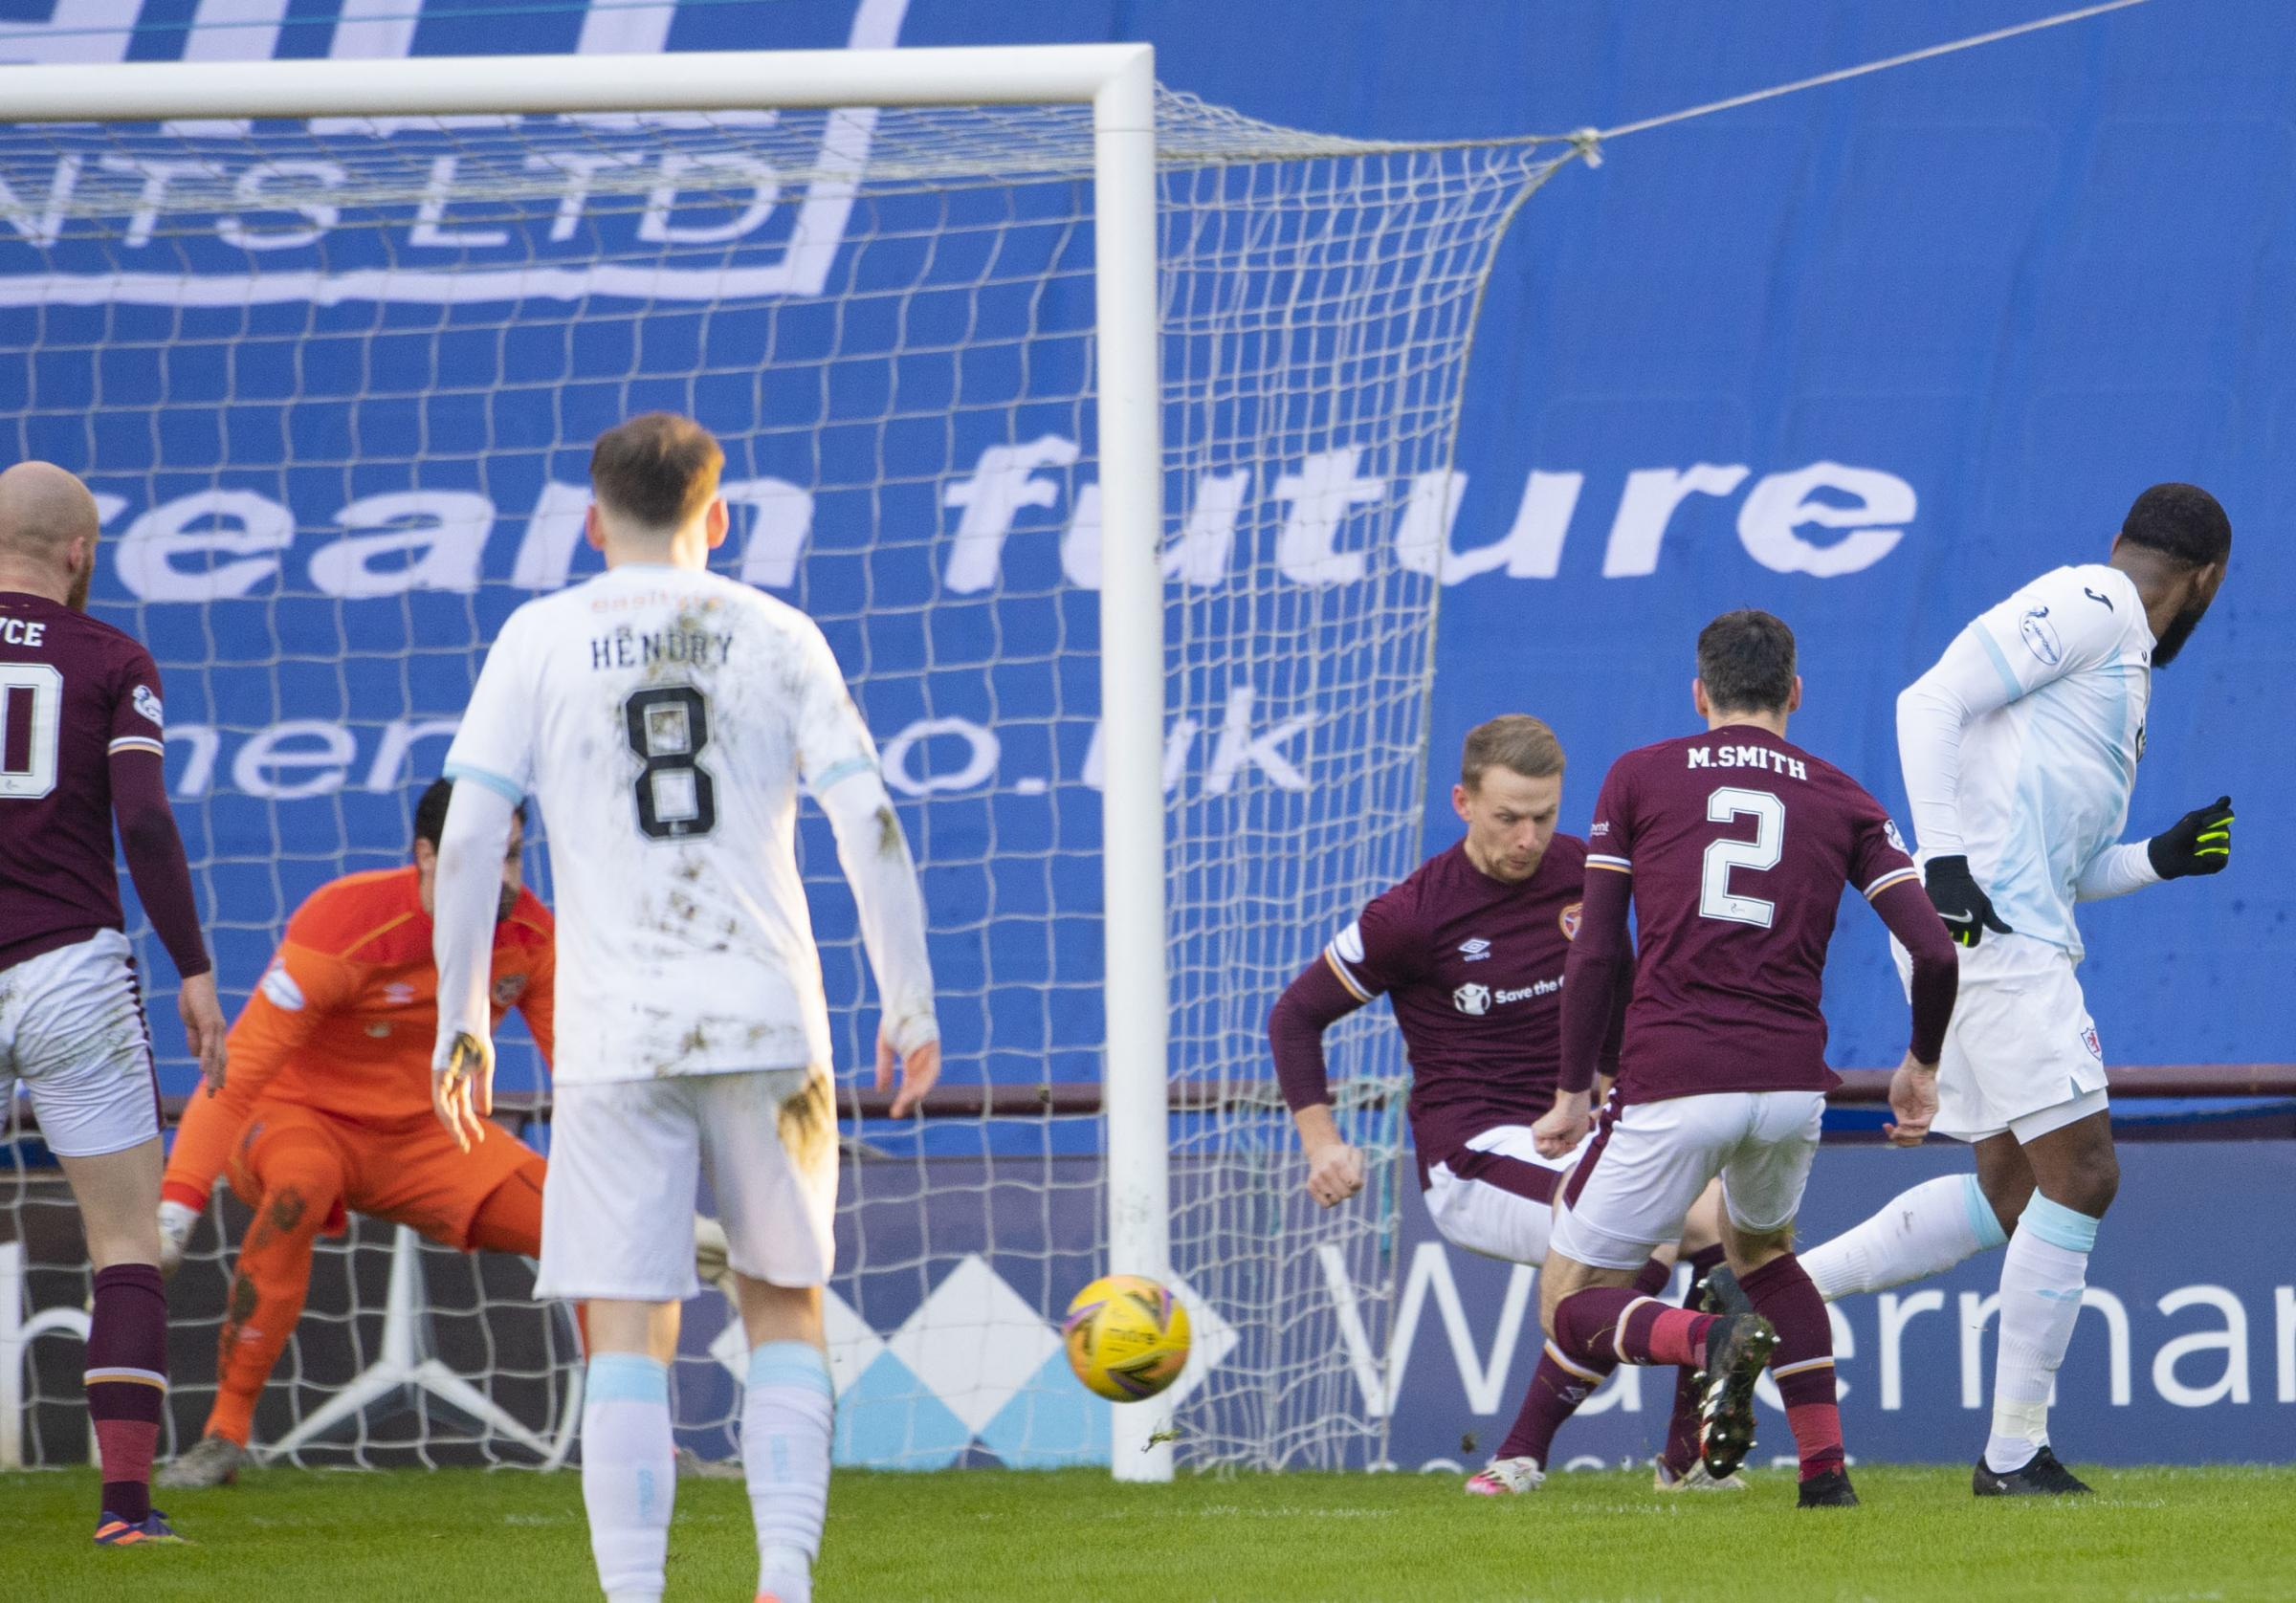 McGlynn full of praise for victory over Hearts following Raith Rovers quarantine